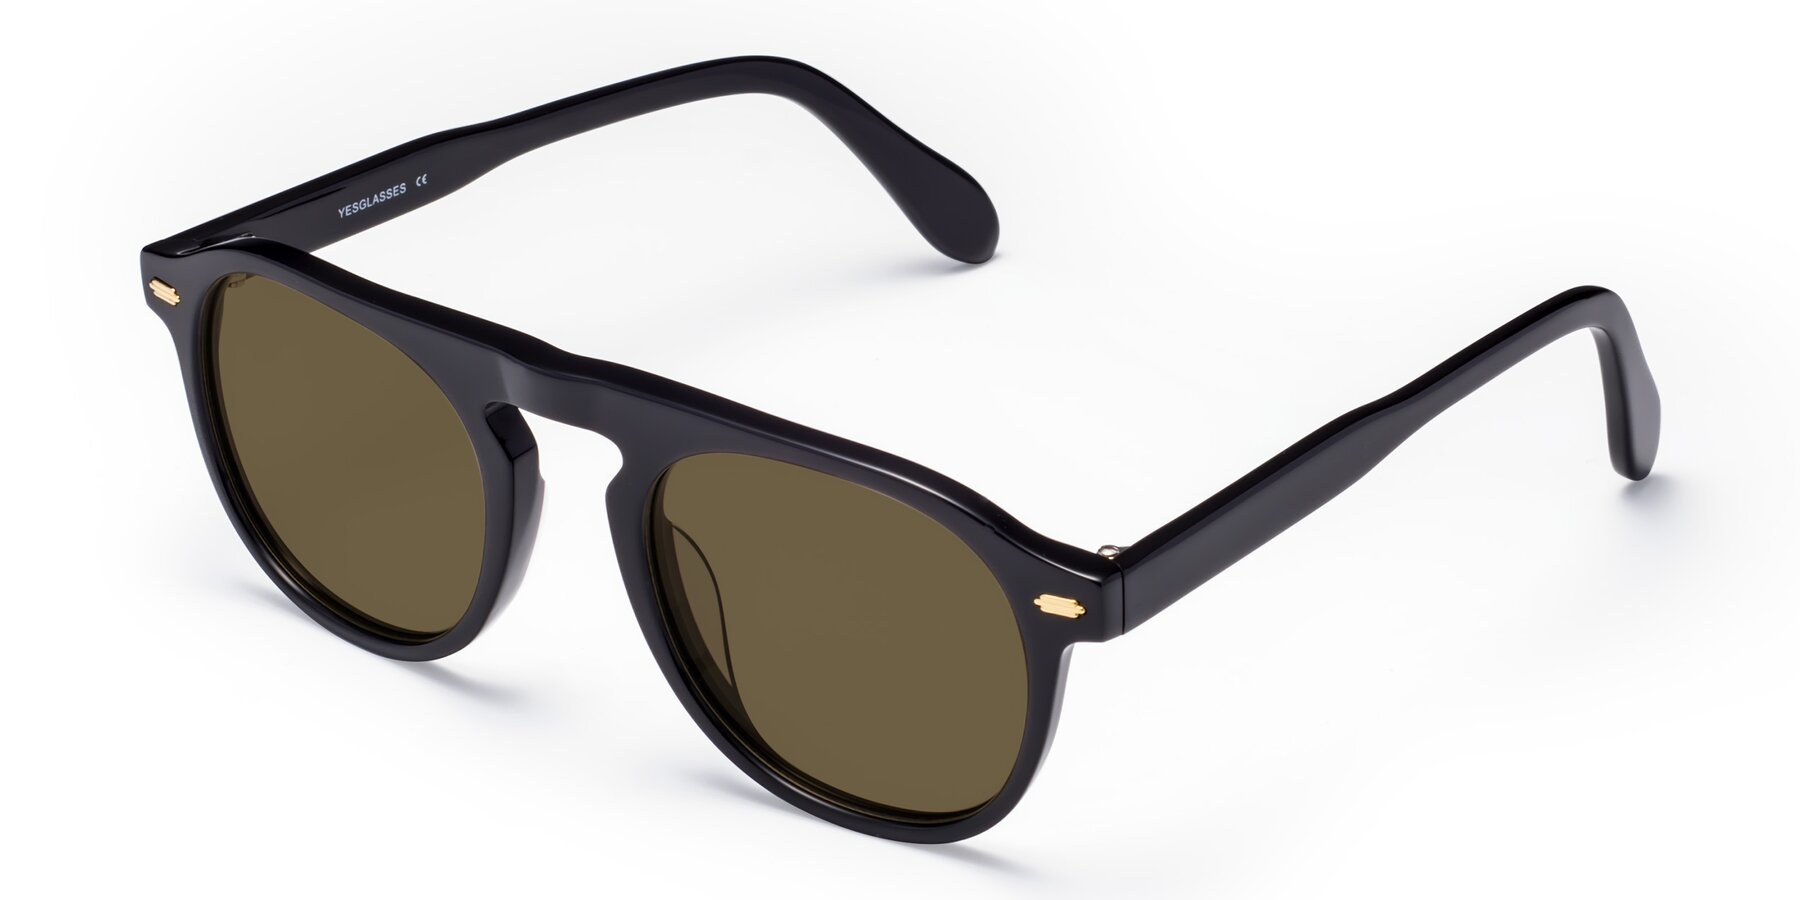 Angle of Mufasa in Black with Brown Polarized Lenses